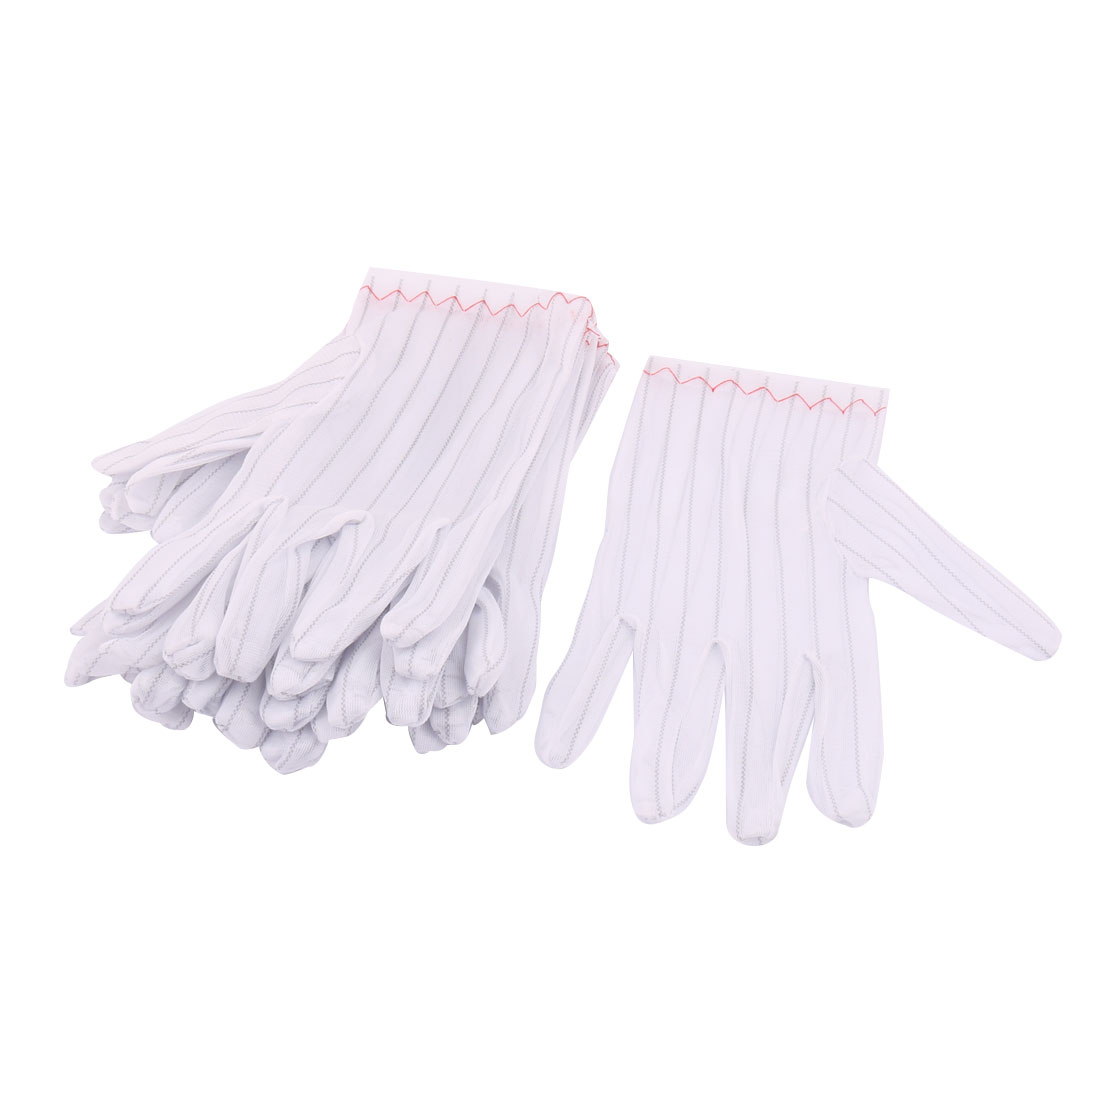 5 Pairs Electronic Working Protective Nonslip Anti-static Gloves Protector